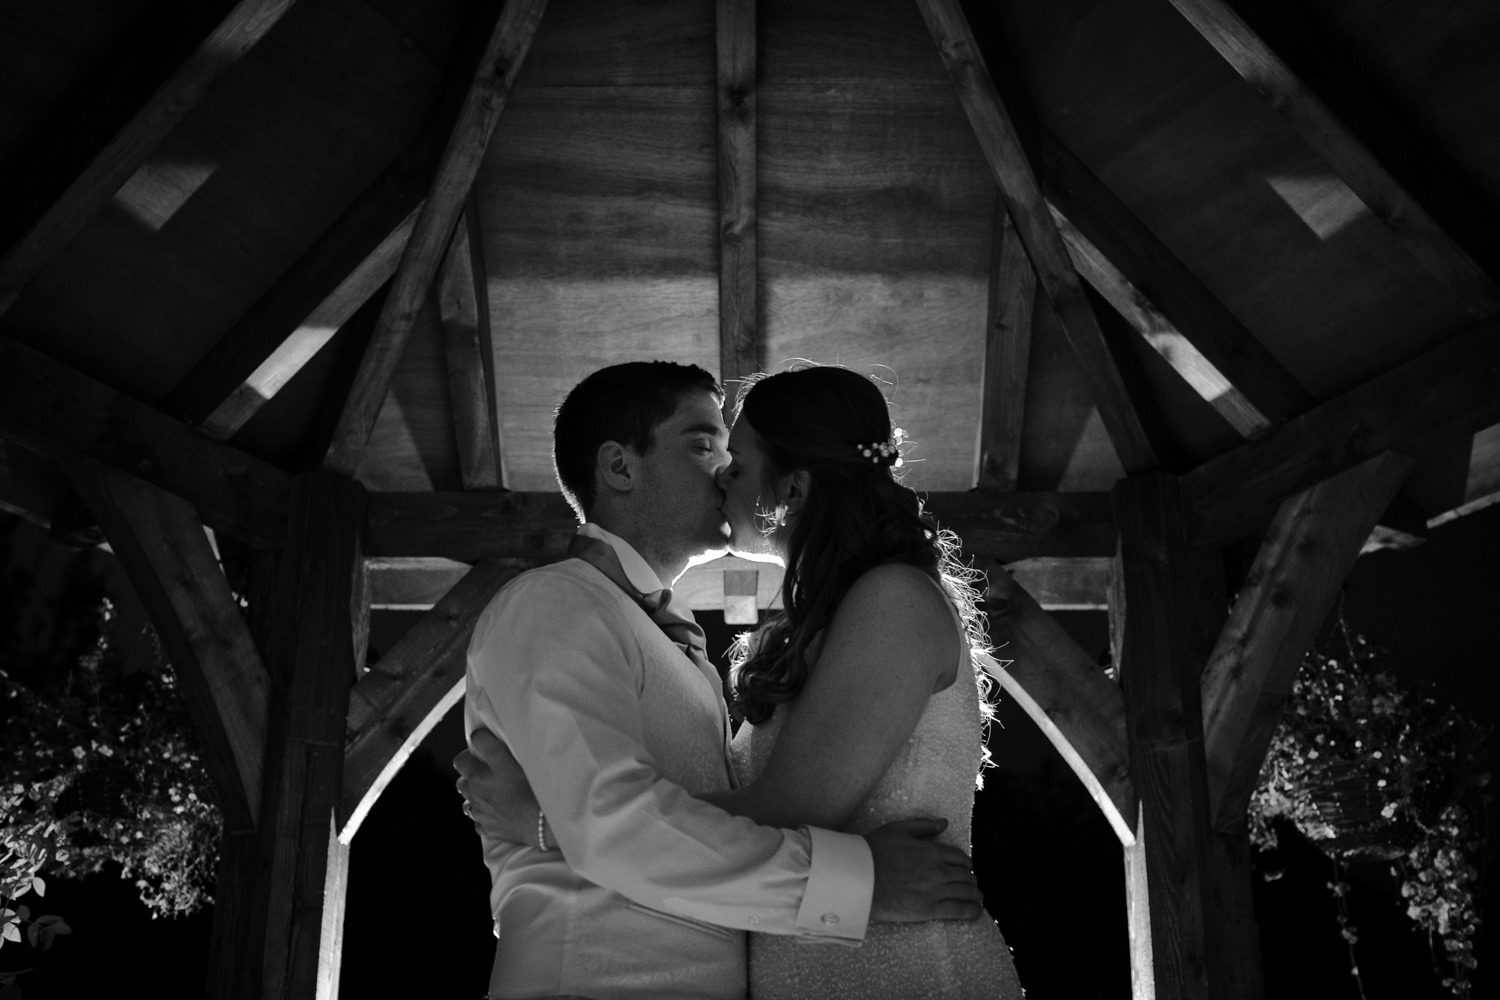 South-West-Wedding-photographer-Mark-Barnes-Yarlington-Barn-wedding-photography-84.jpg